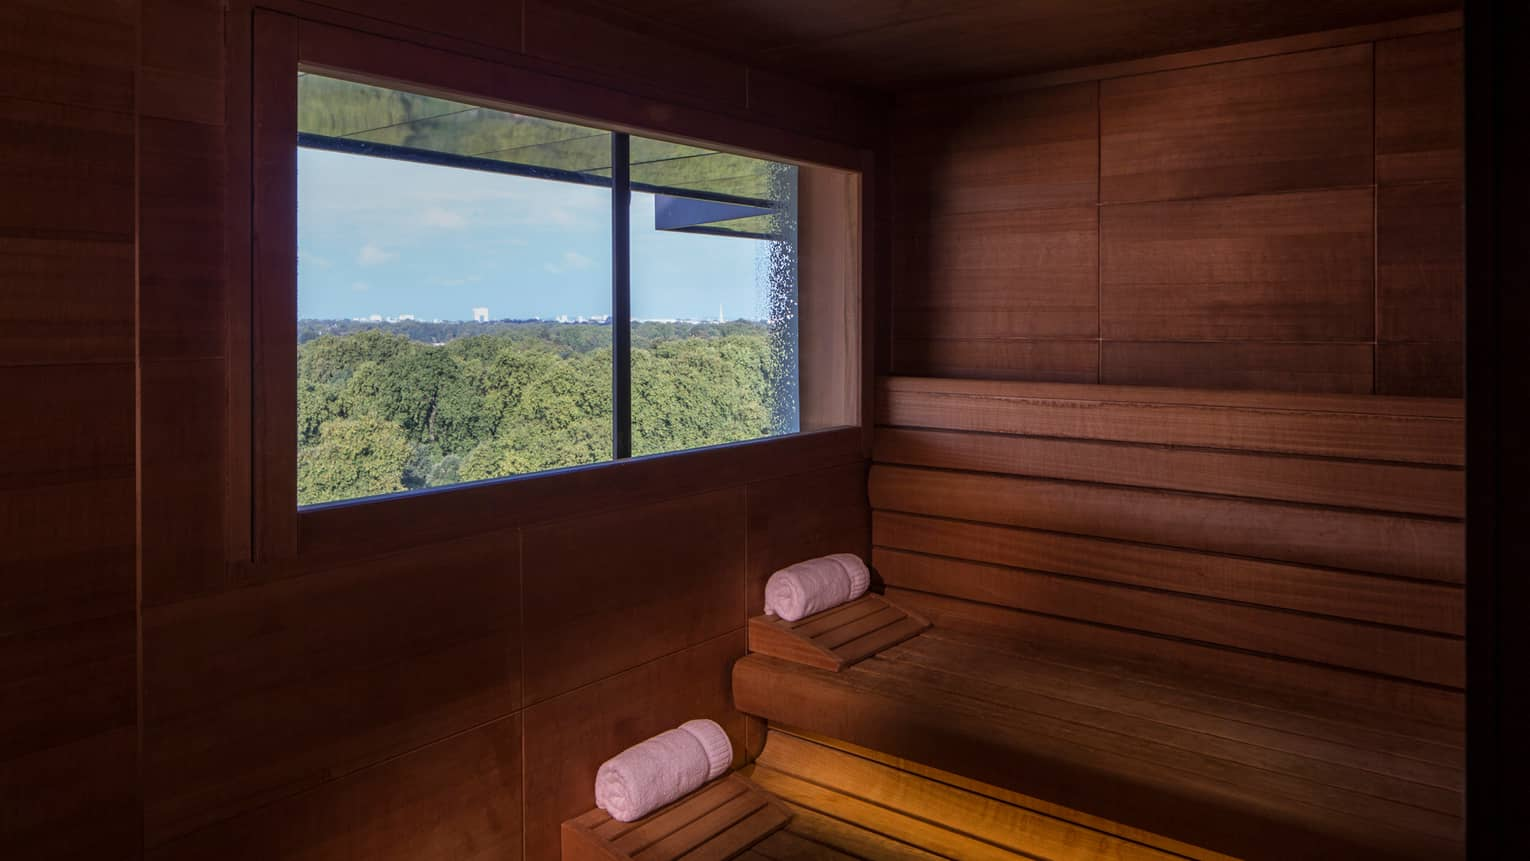 Rolled white towels on benches in wood sauna, window looking out over trees